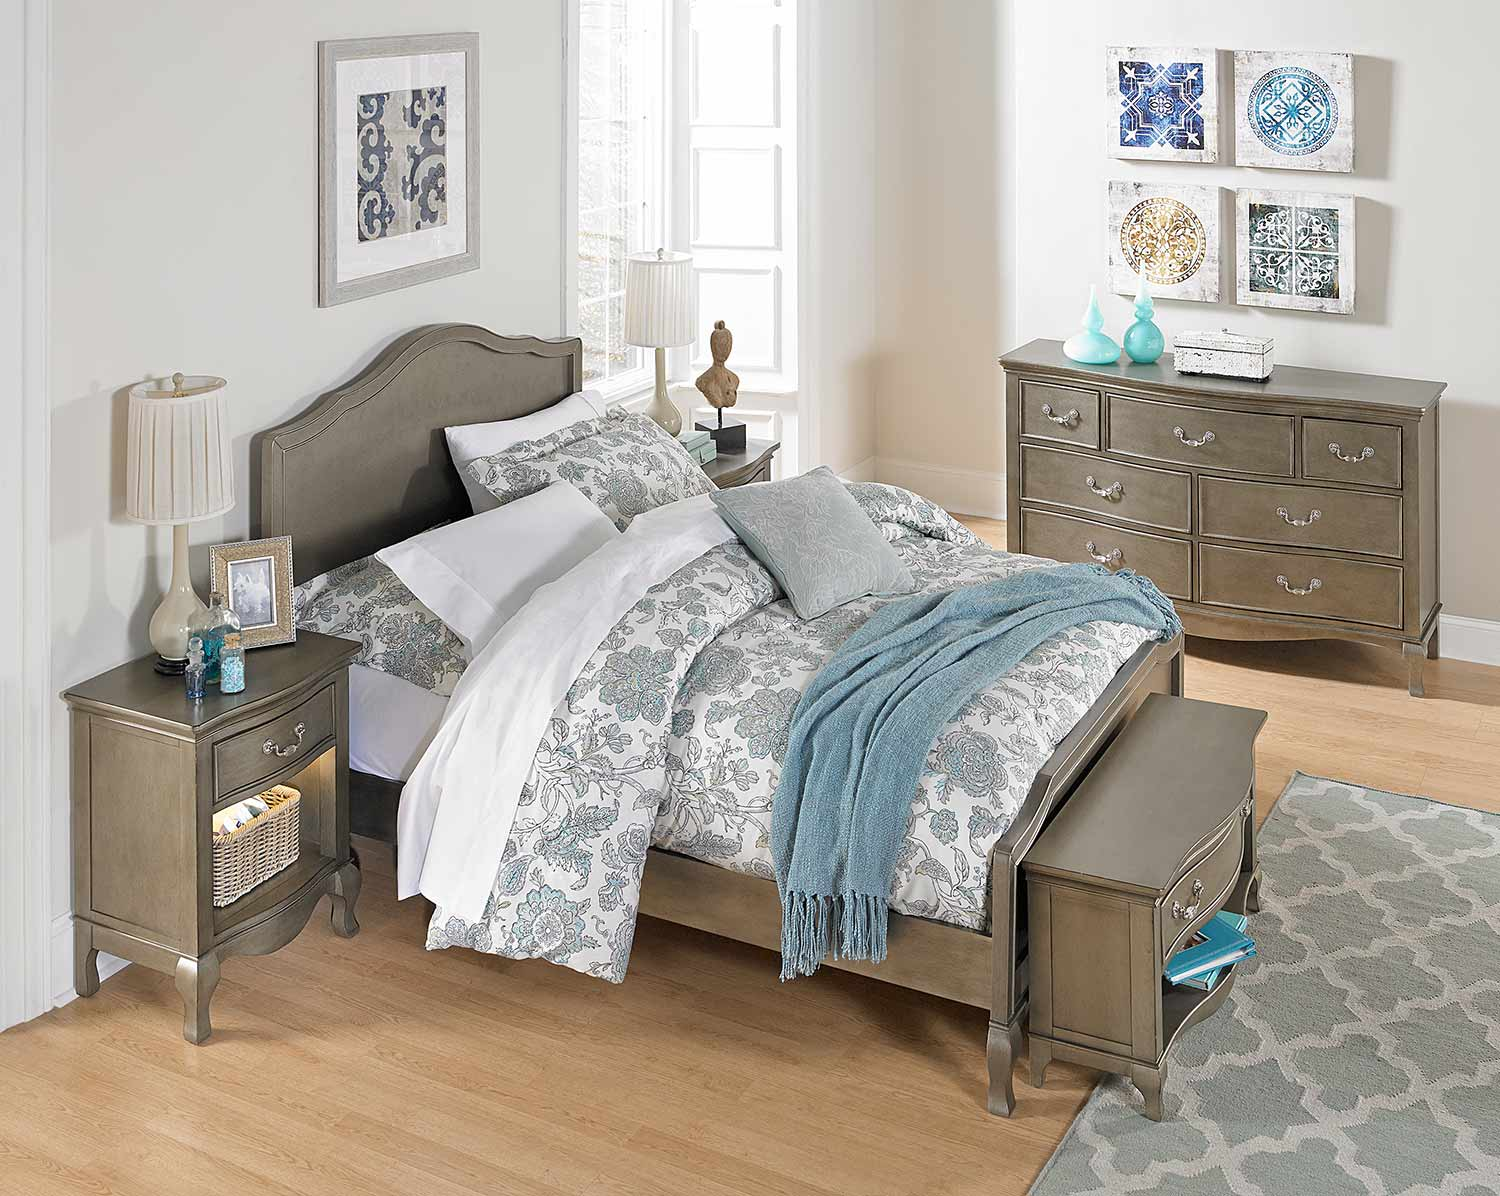 NE Kids Kensington Charlotte Panel Bedroom Set - Antique Silver